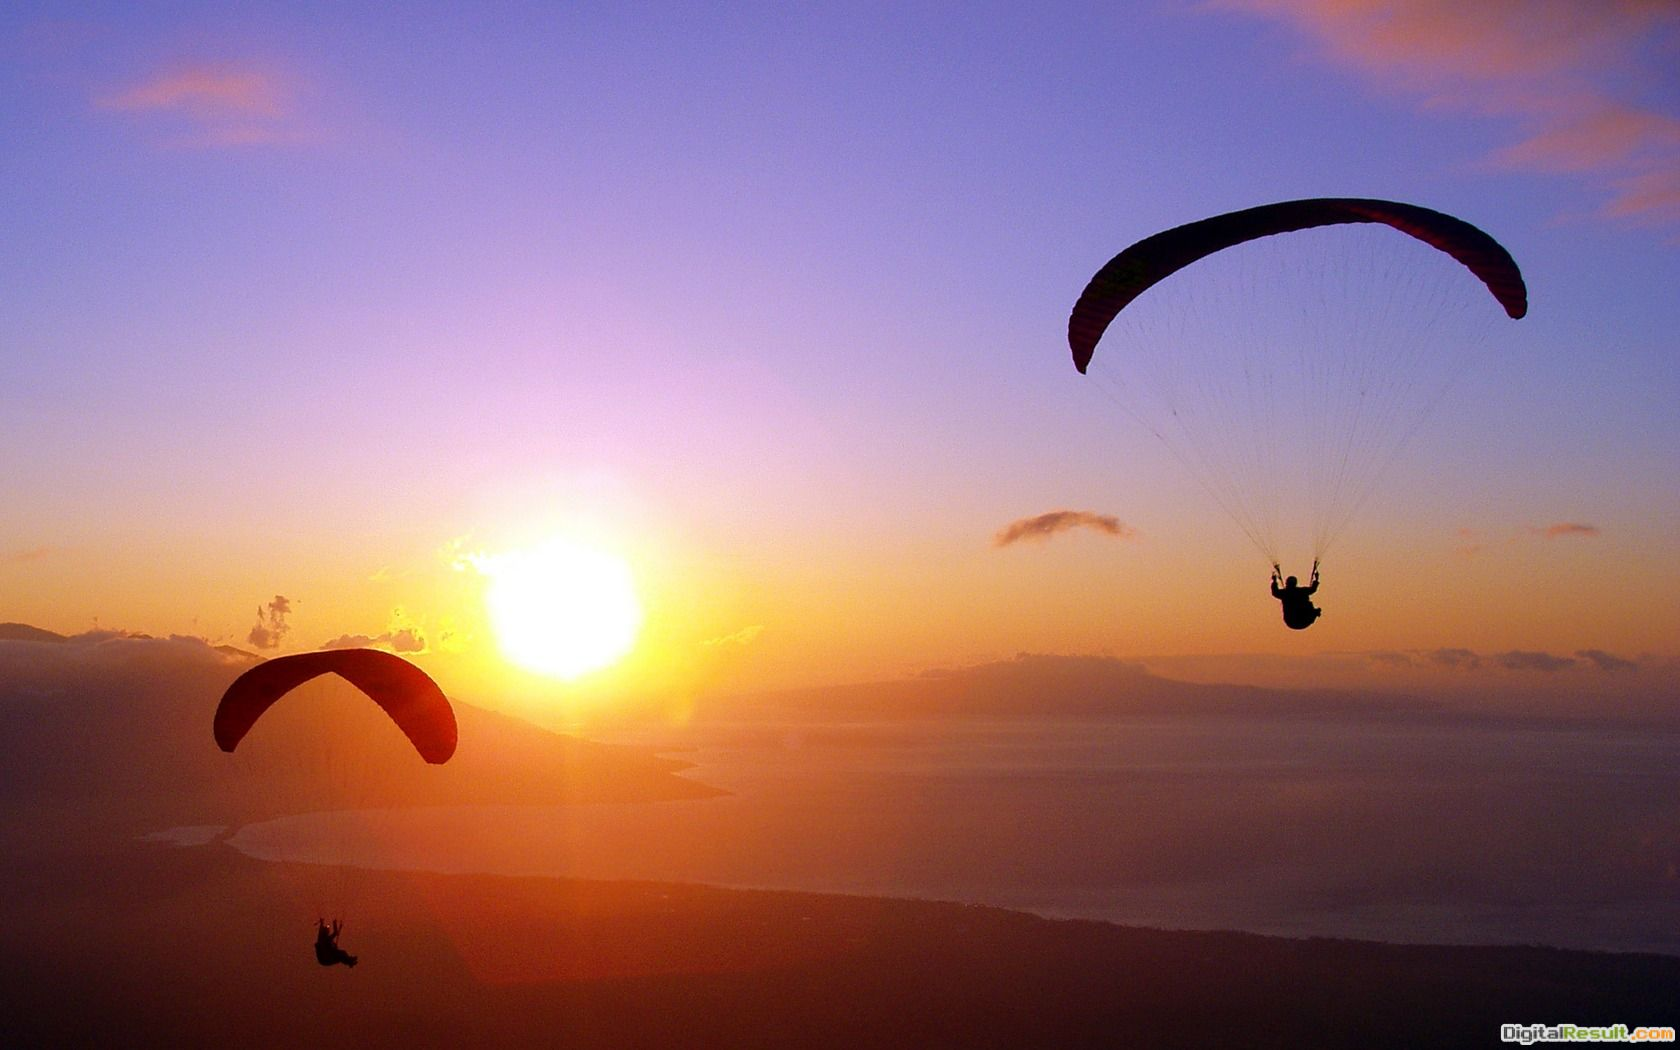 Skydiving Wallpaper Sunset Free download hq skydiver sunset wallpaper 208